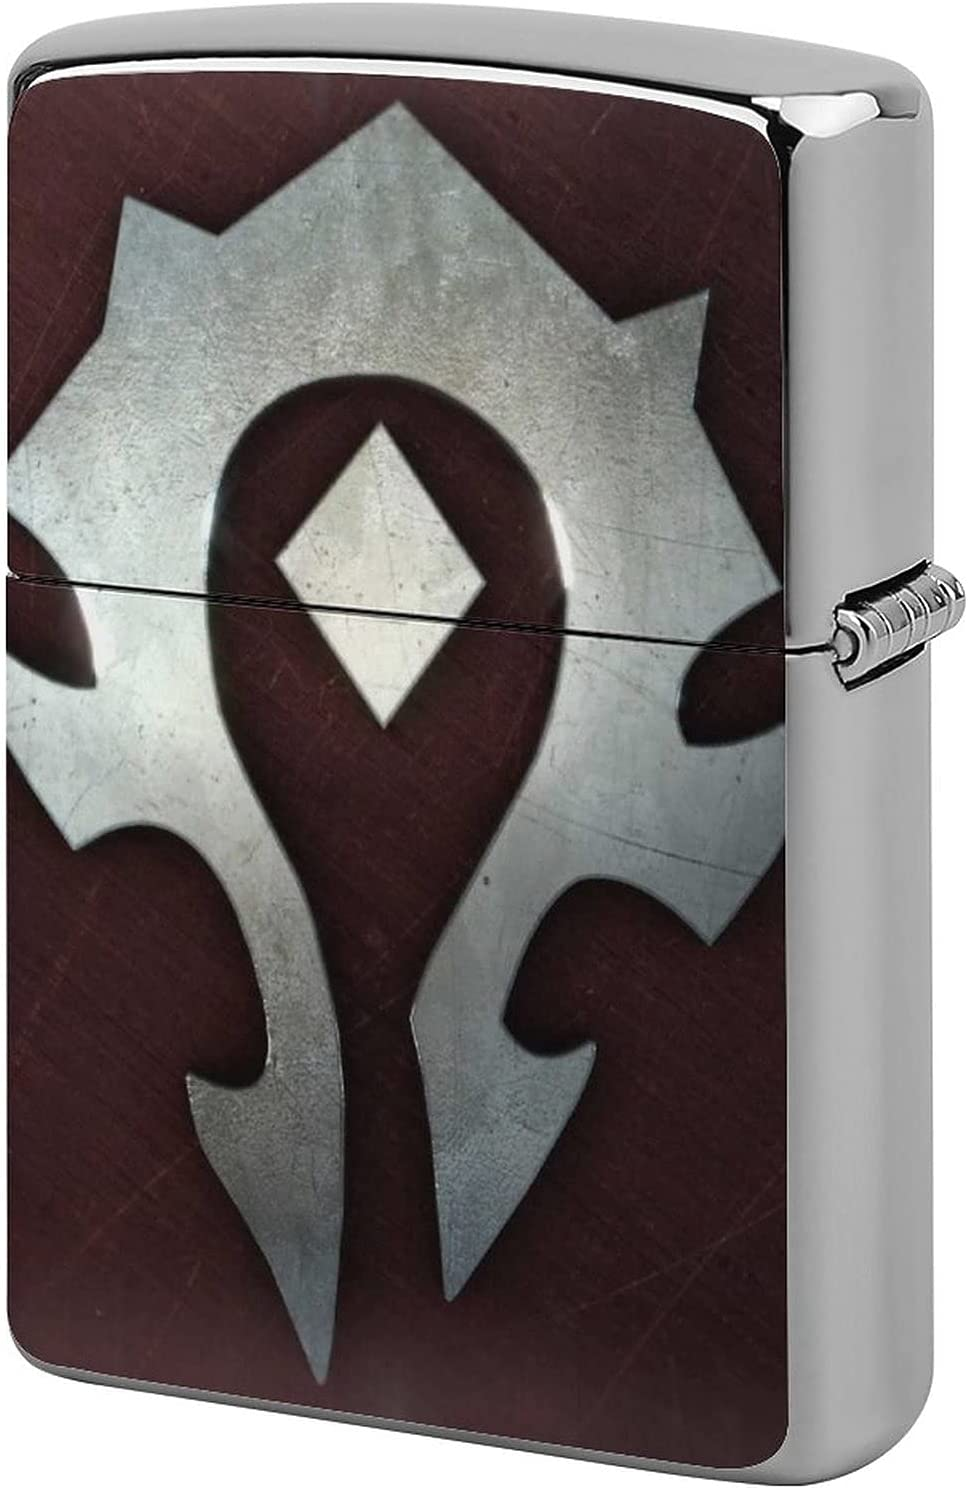 Pocket Lighter Max 47% OFF Outlet sale feature Housing for Man and Ligh Personalize Metal Women